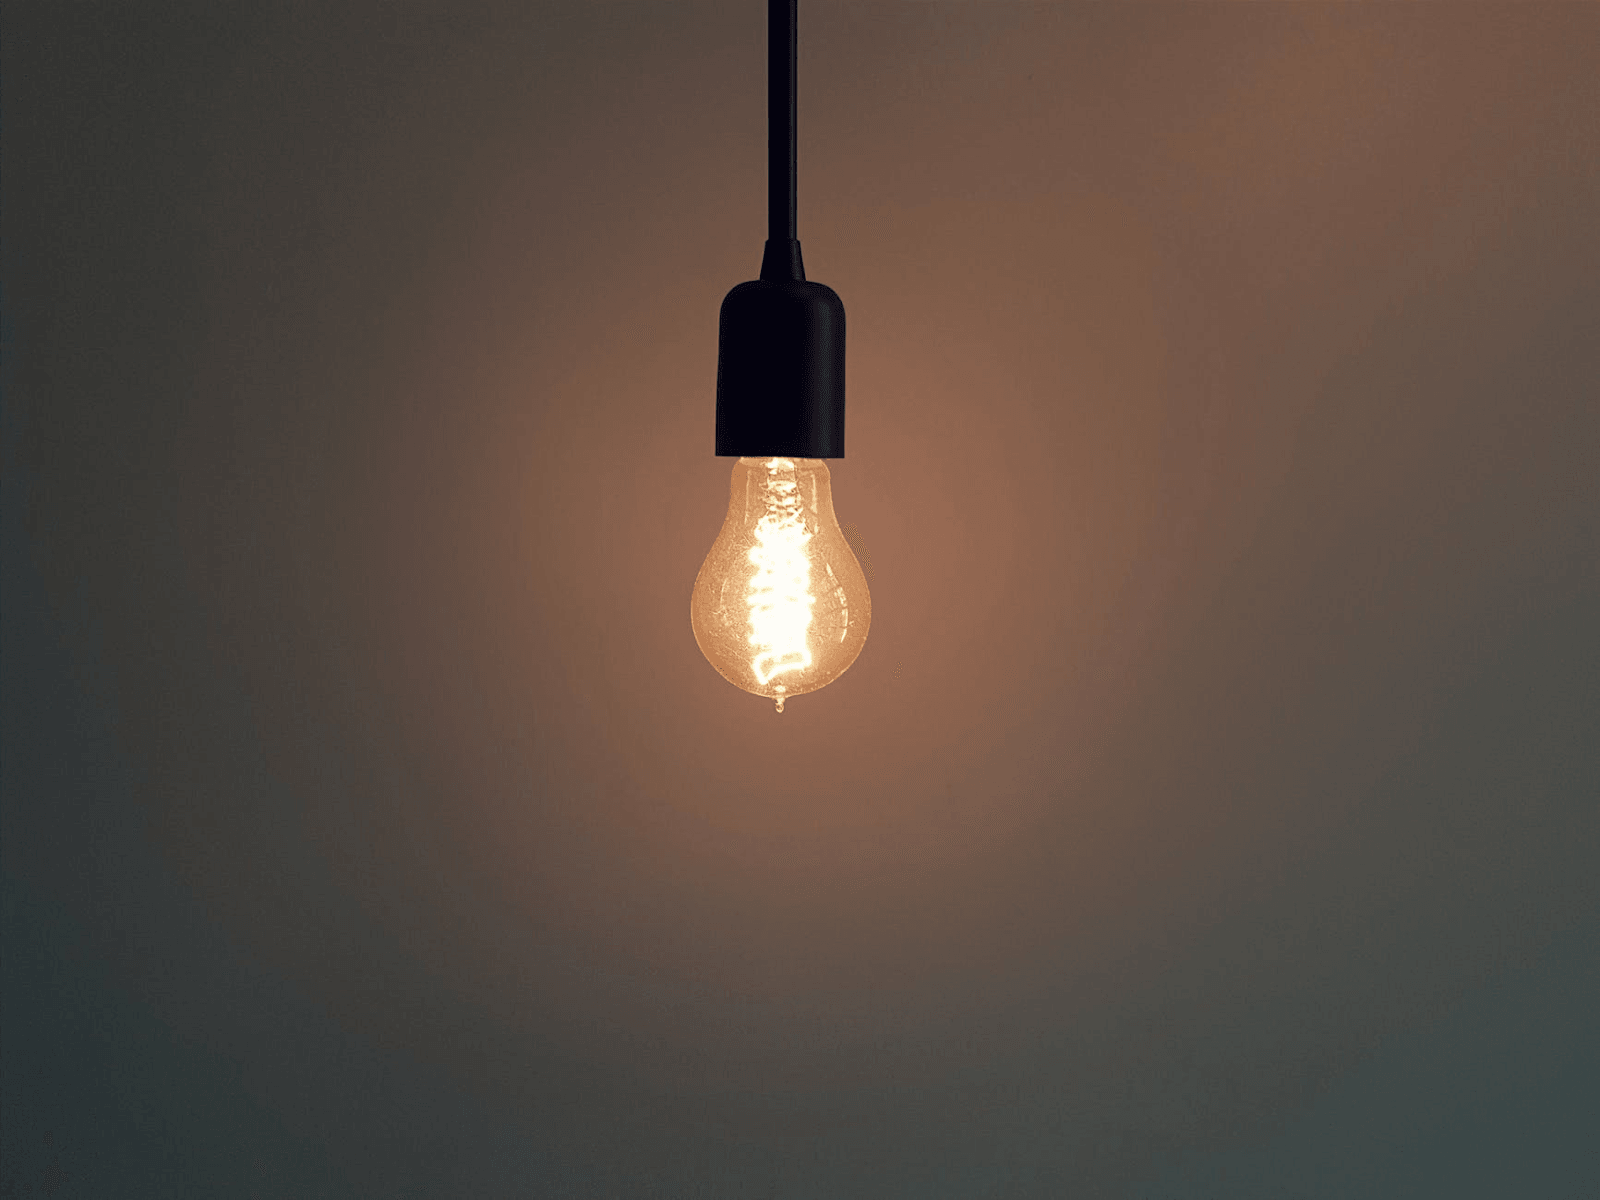 A single lit light bulb hanging from a cord.